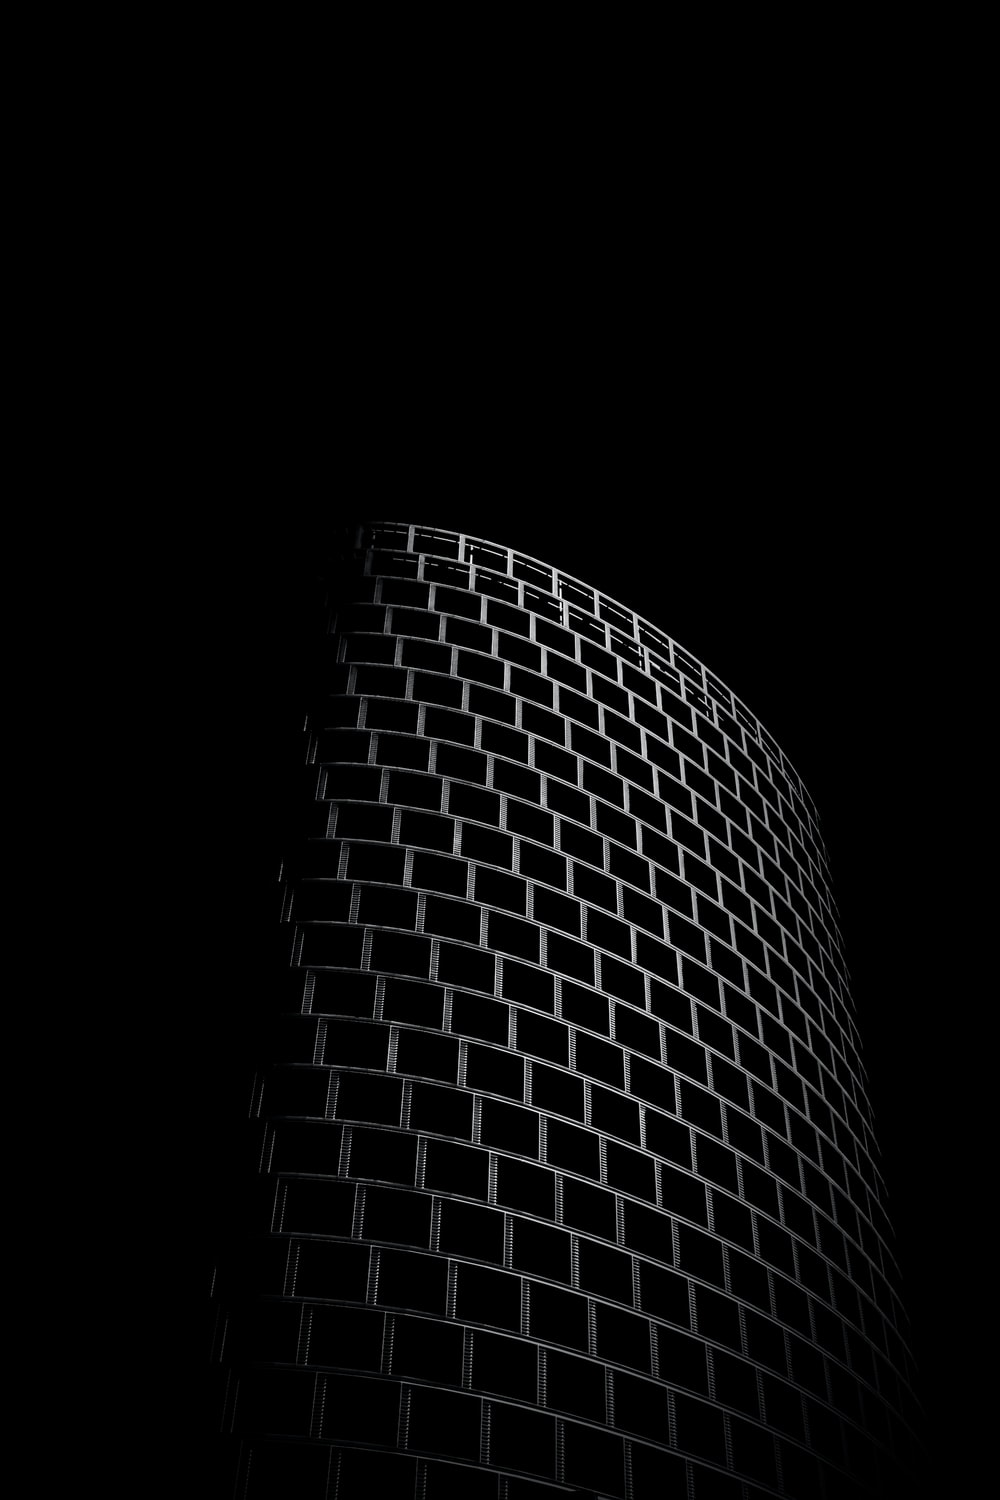 Amoled Wallpapers Free Download 100 Best Free Wallpaper Black